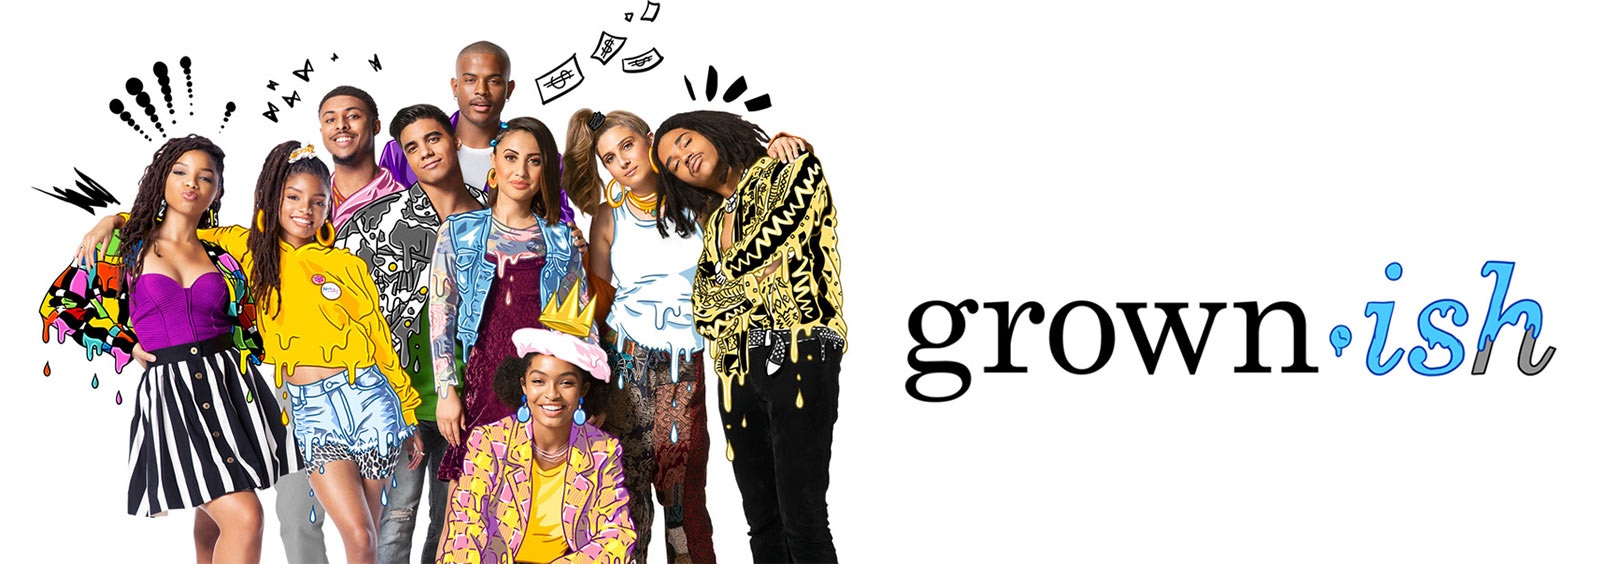 Grownish - Freeform's yet another hit comedy-drama